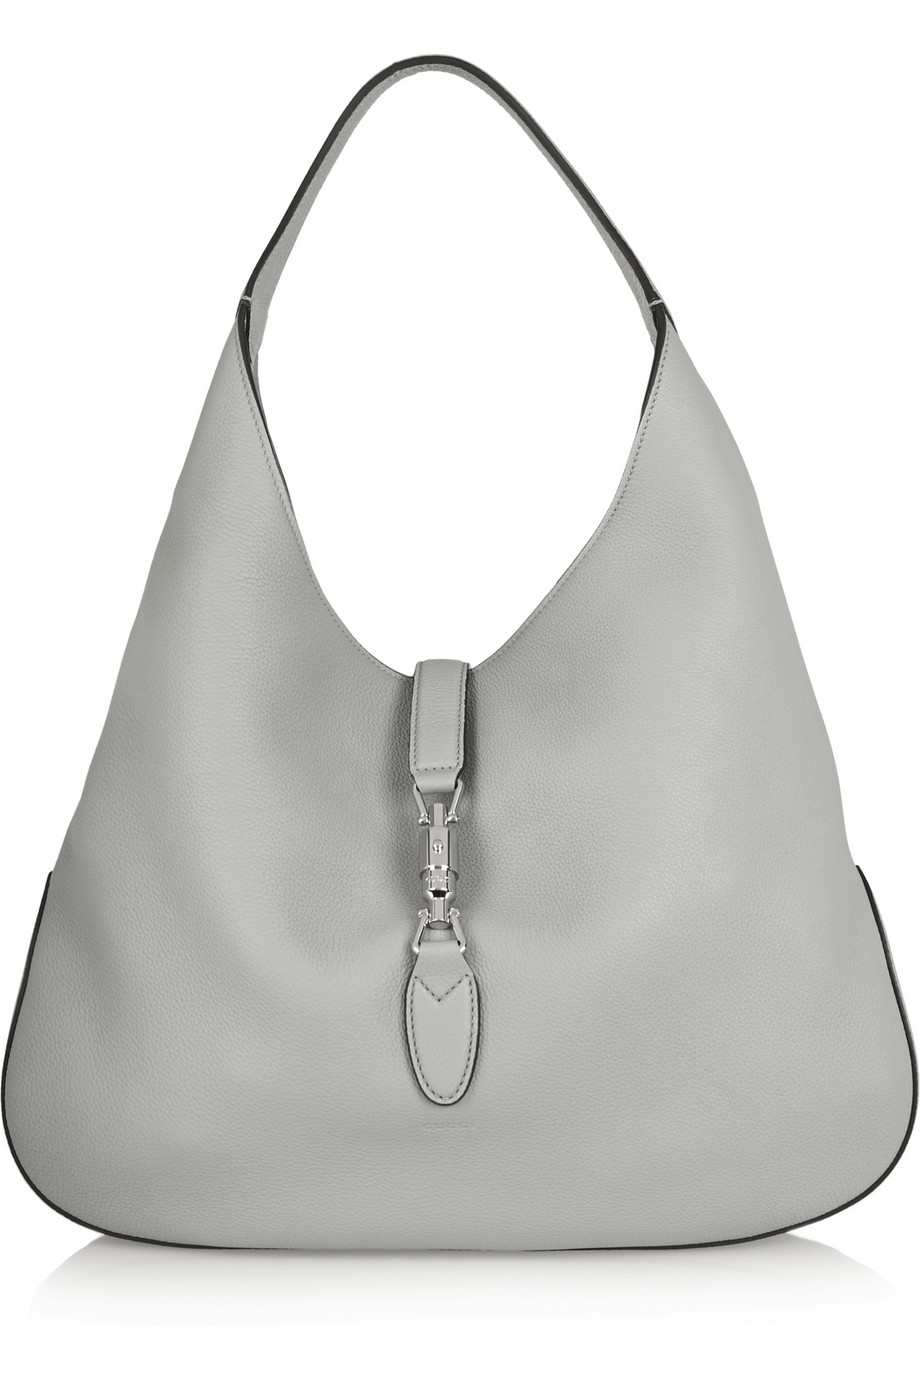 0852e37a01de7 Lyst - Gucci Jackie Soft Hobo Textured-leather Shoulder Bag in Gray